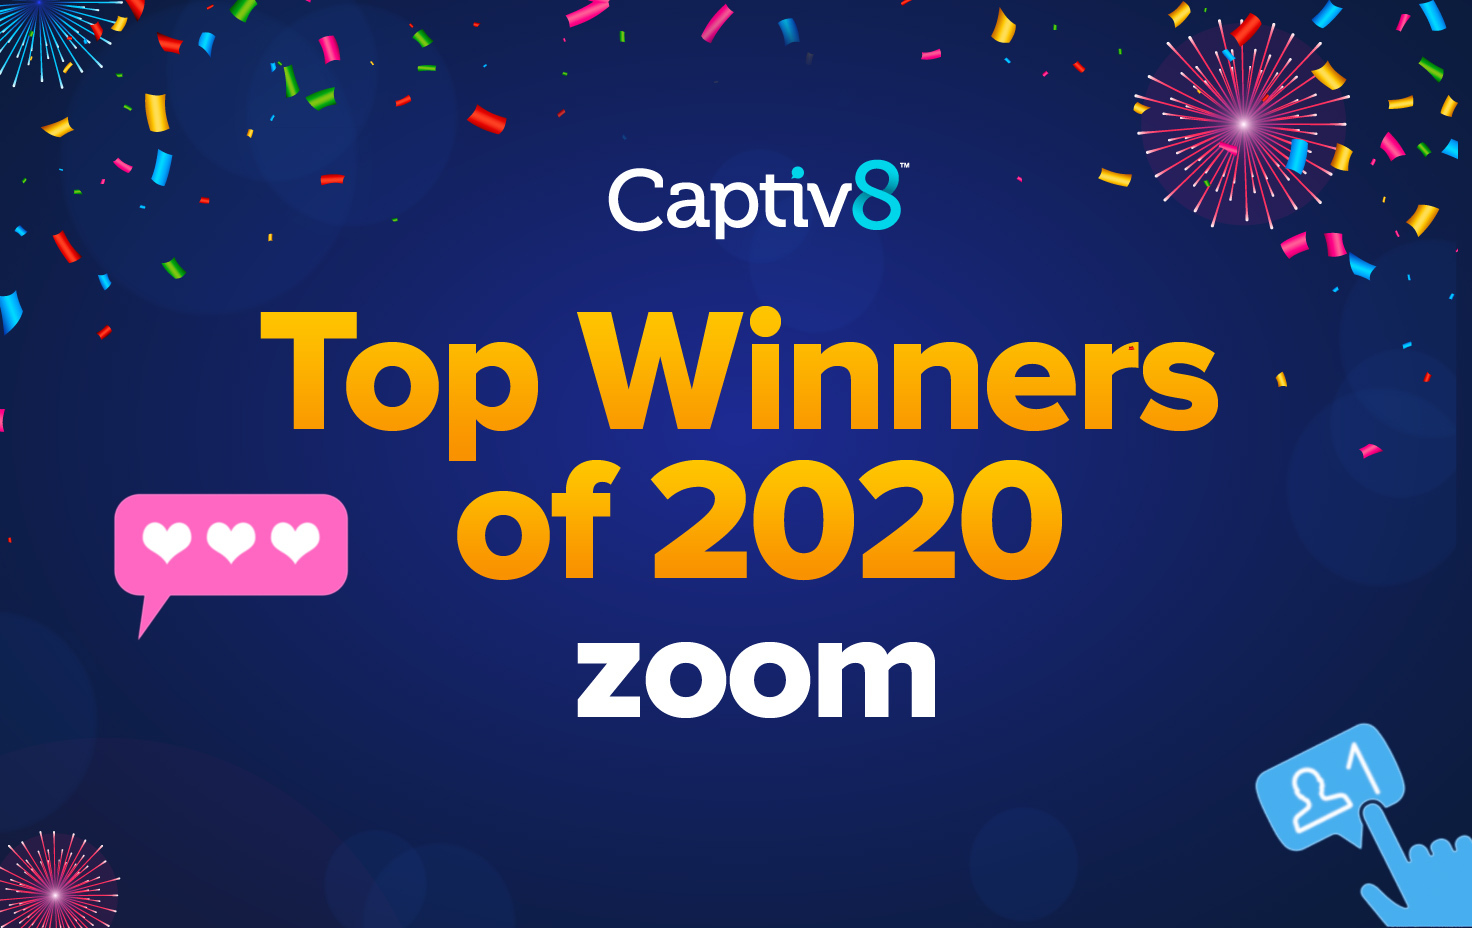 Captiv8 Top Winners 2020